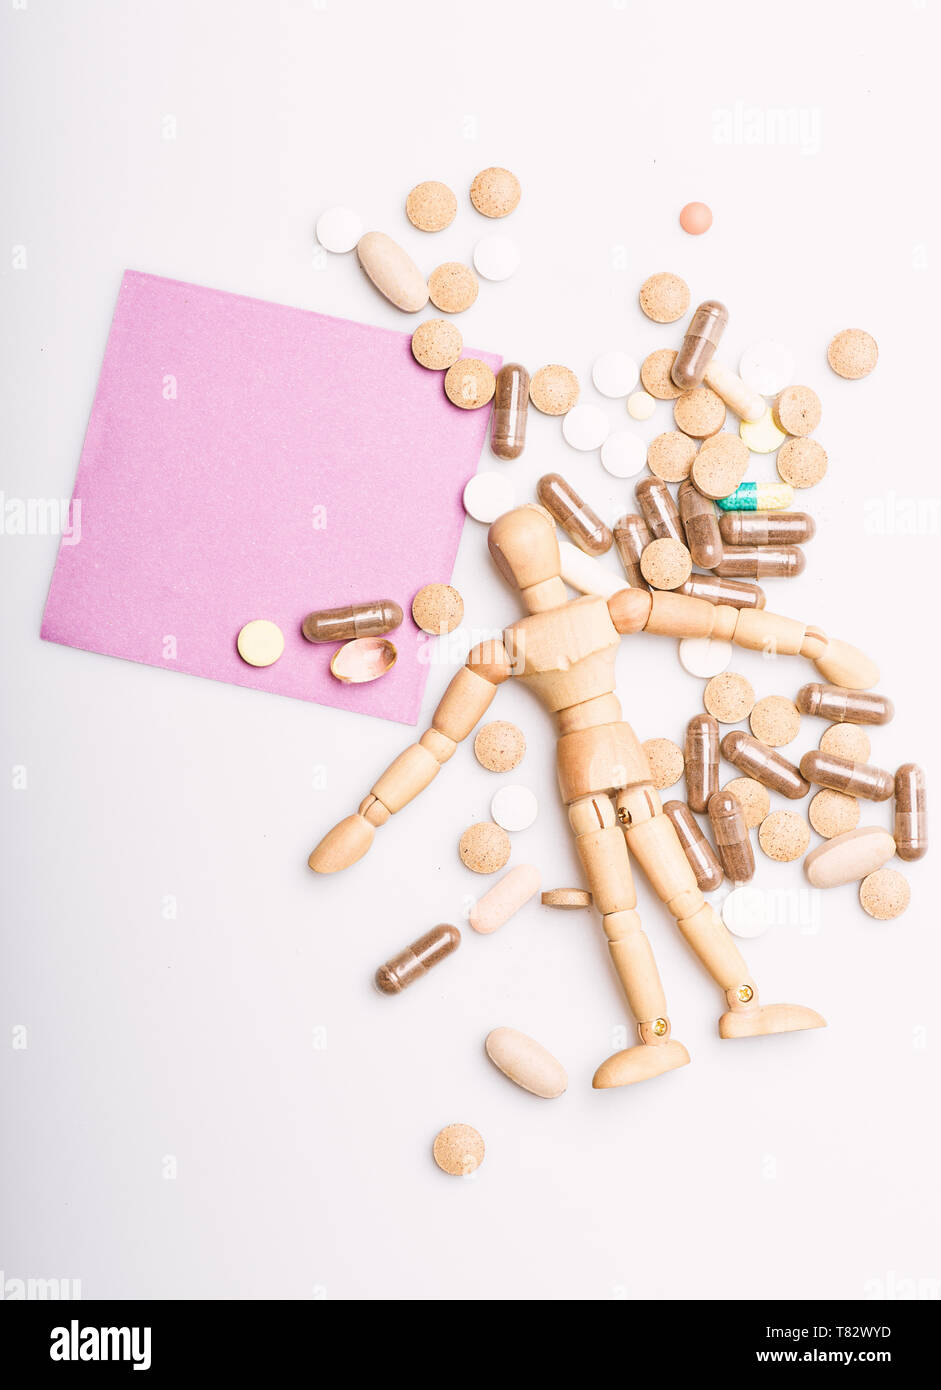 Health and treatment. Health care and problems. Immunity and medicine vitamins. Overdose and death. Medicine prescription. Wooden human dummy lay on pile of pills and tablets. Take medicine concept. Stock Photo